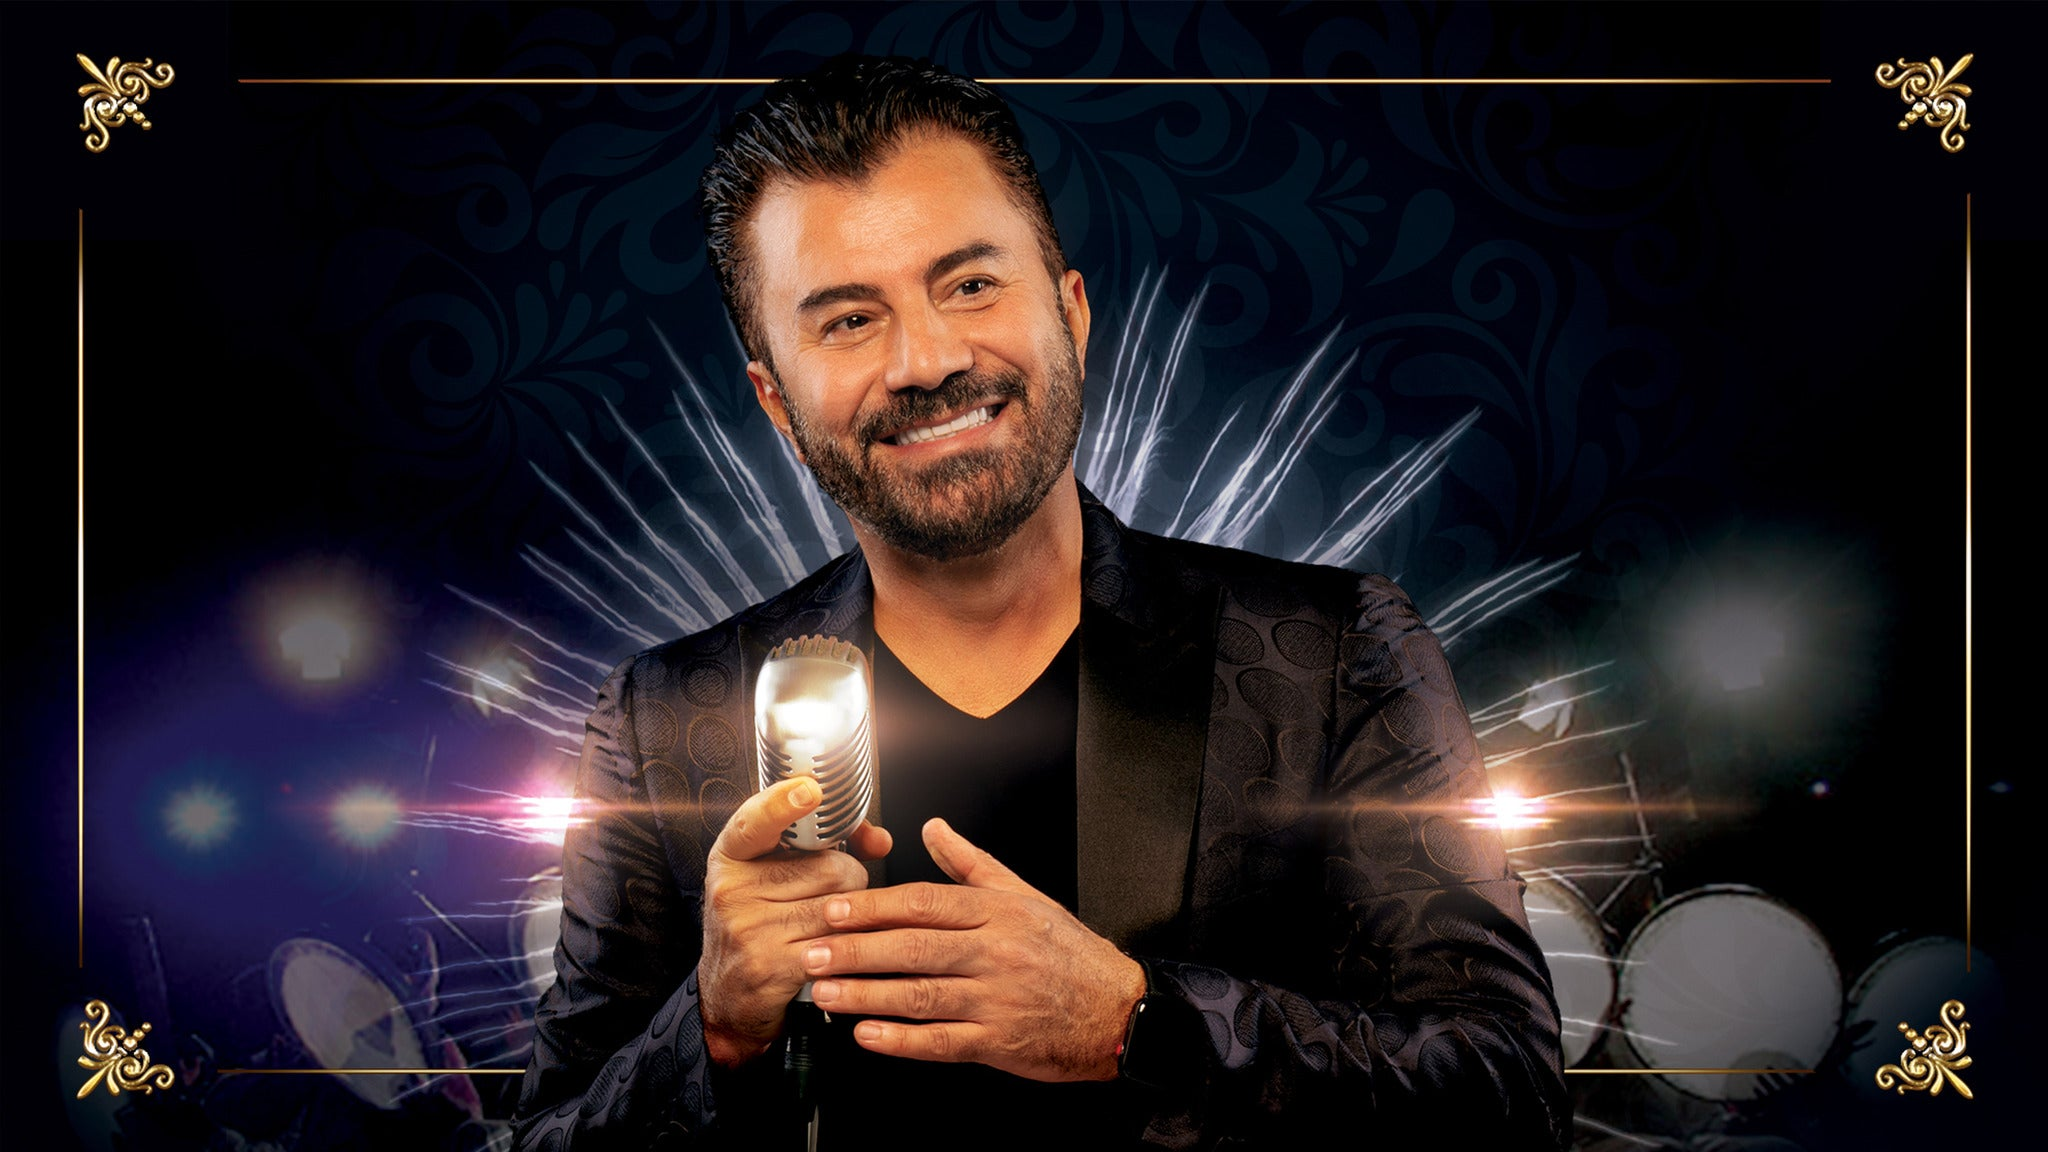 Jamshid Live In Concert at Dolby Theatre